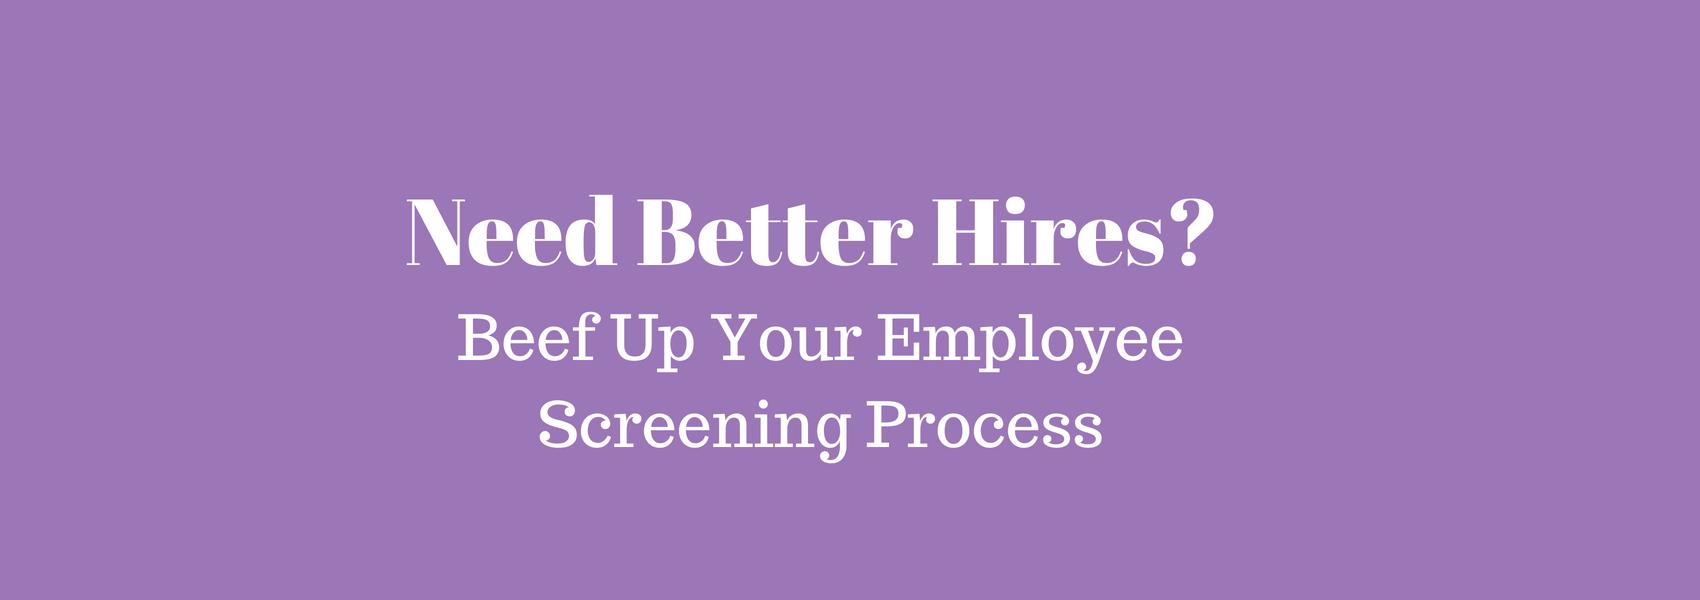 need better hires beef up your employee screening process